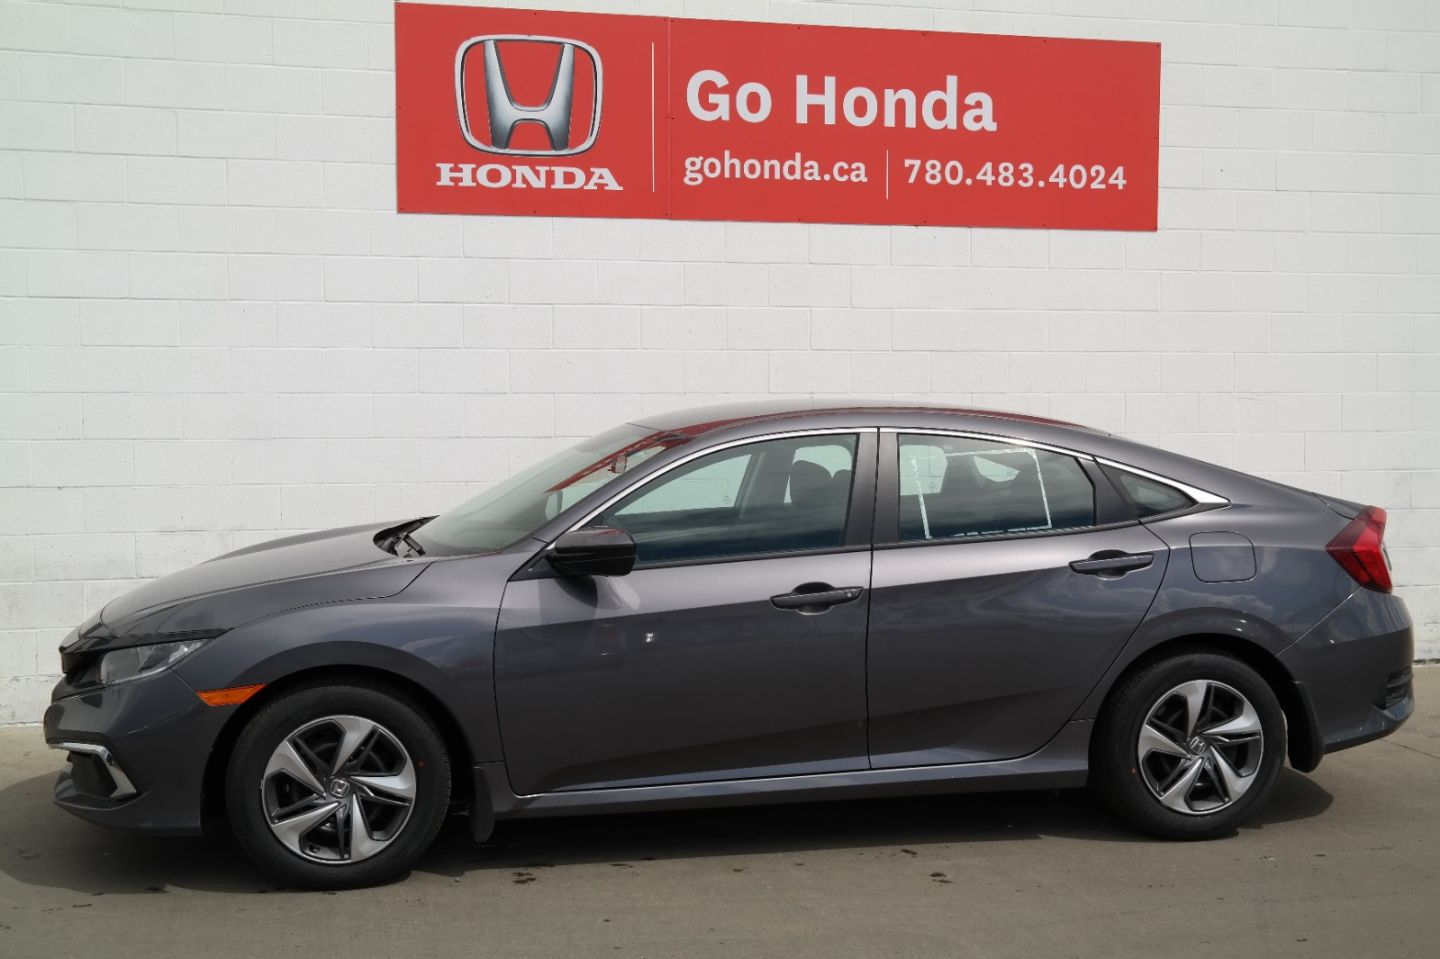 2021 Honda Civic Sedan LX for sale in Edmonton, Alberta